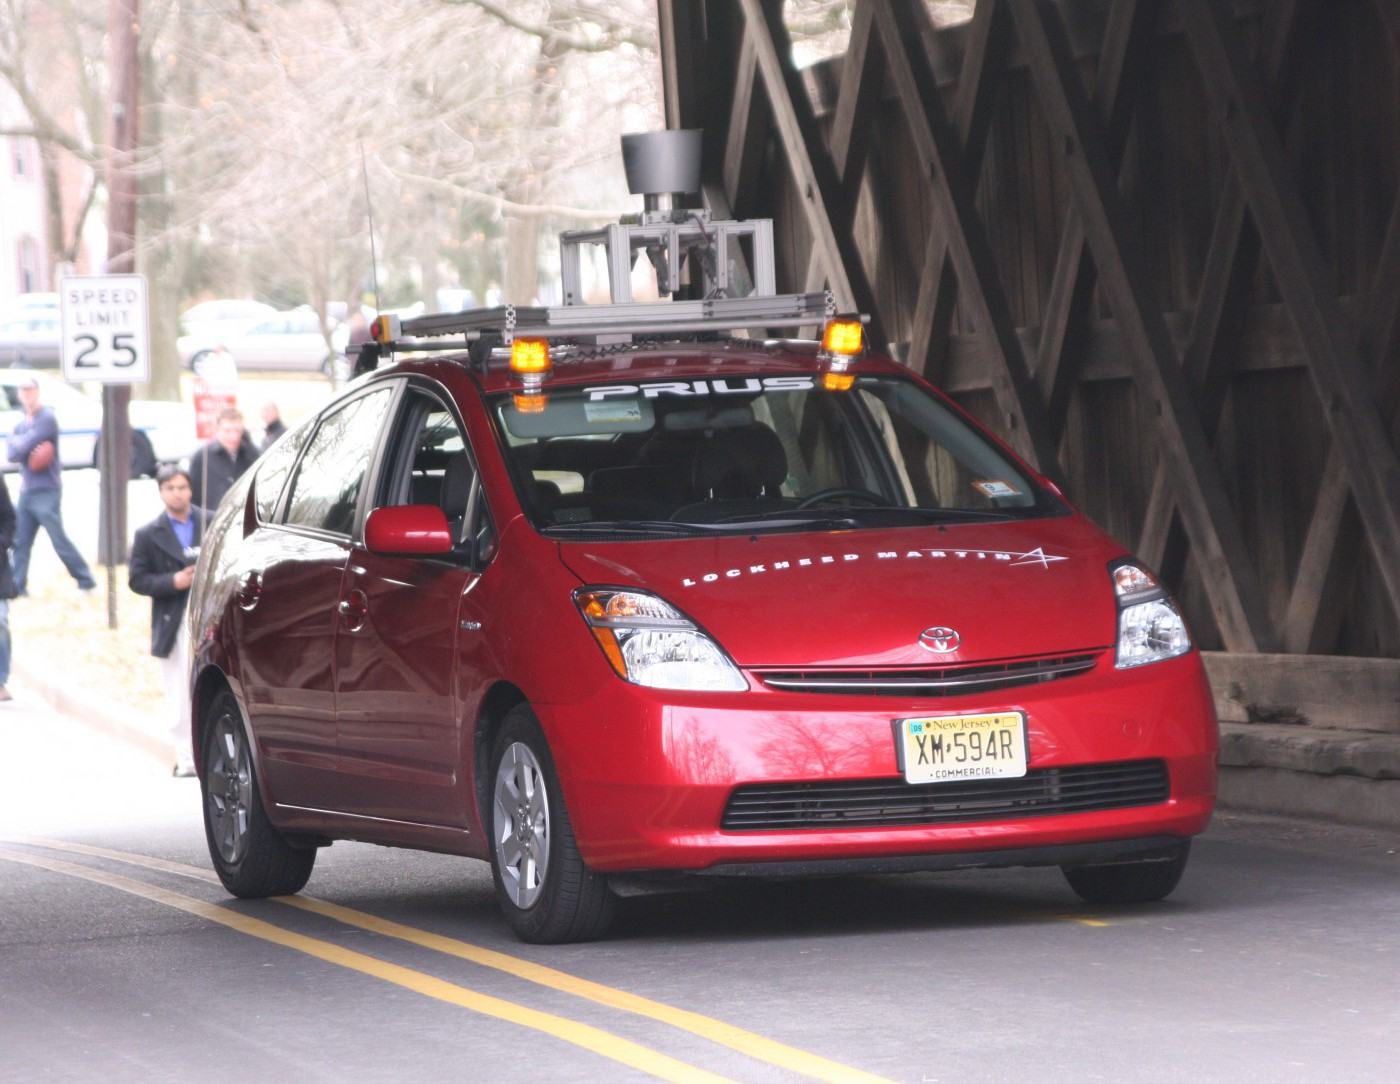 Self-Driving Cars in the Evolving Urban Landscape